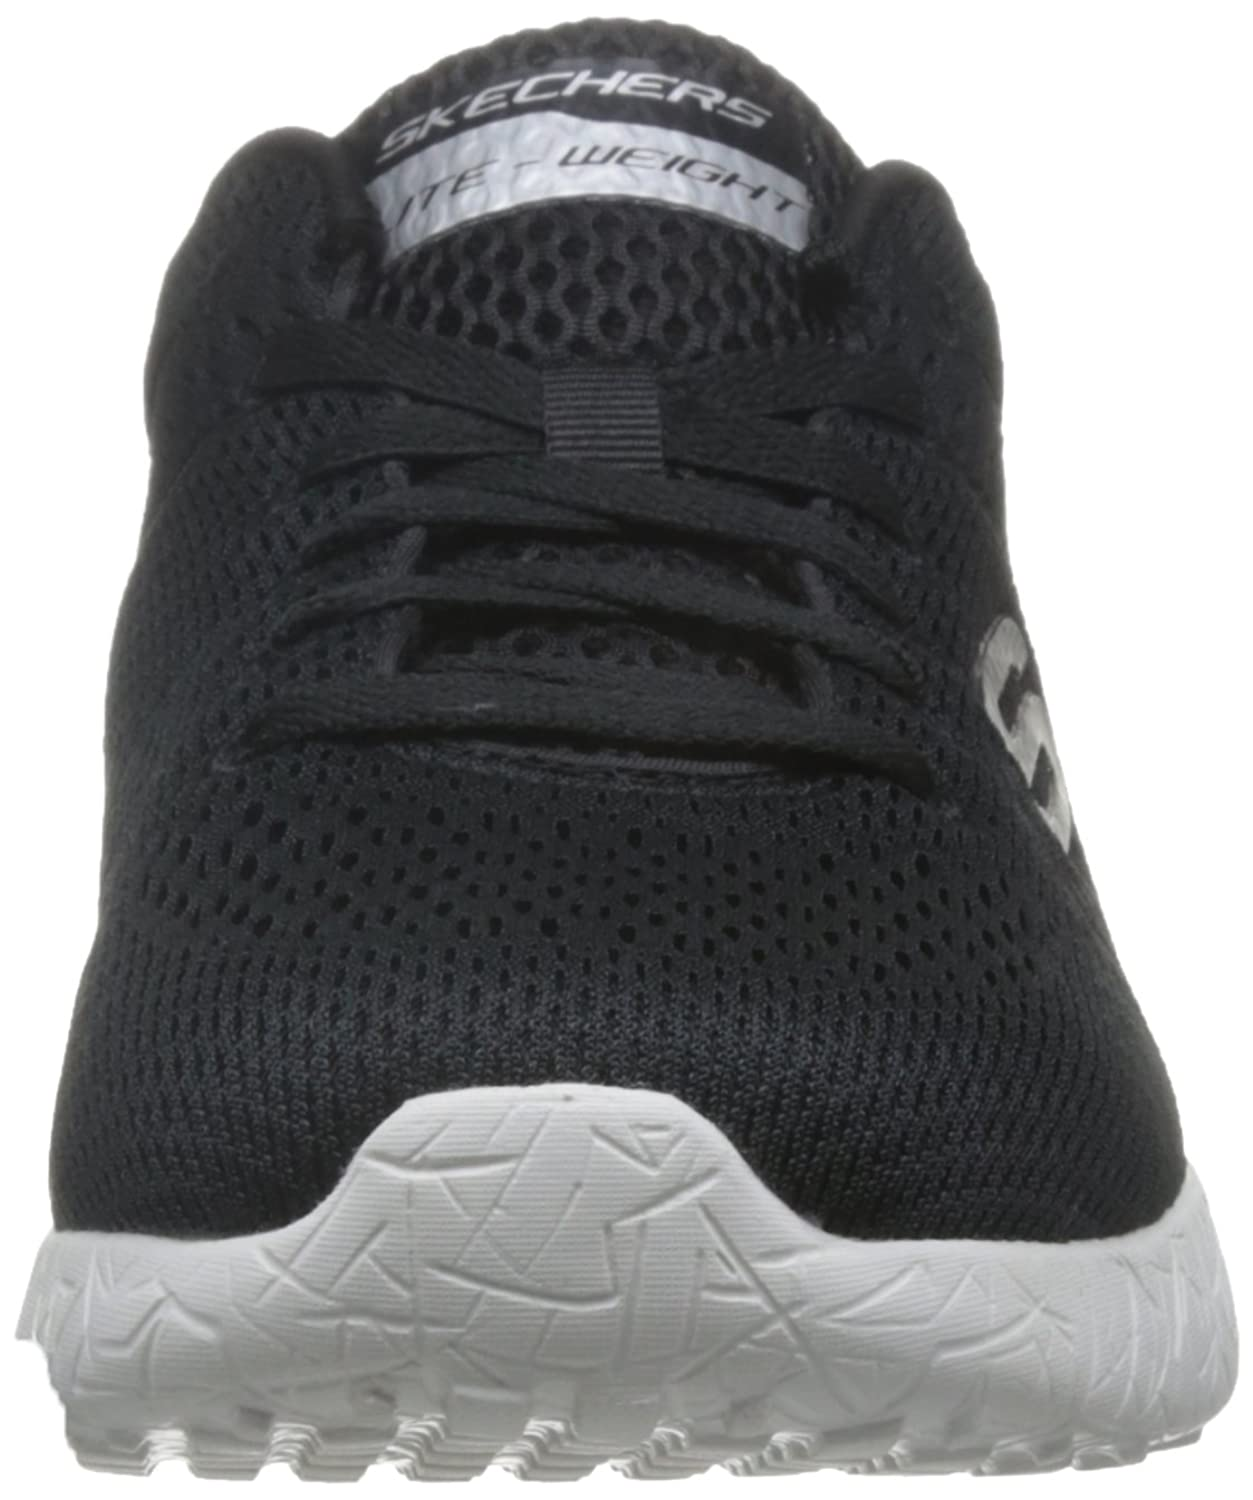 Skechers Mens Chaussures De Tennis Amazon C9tikj